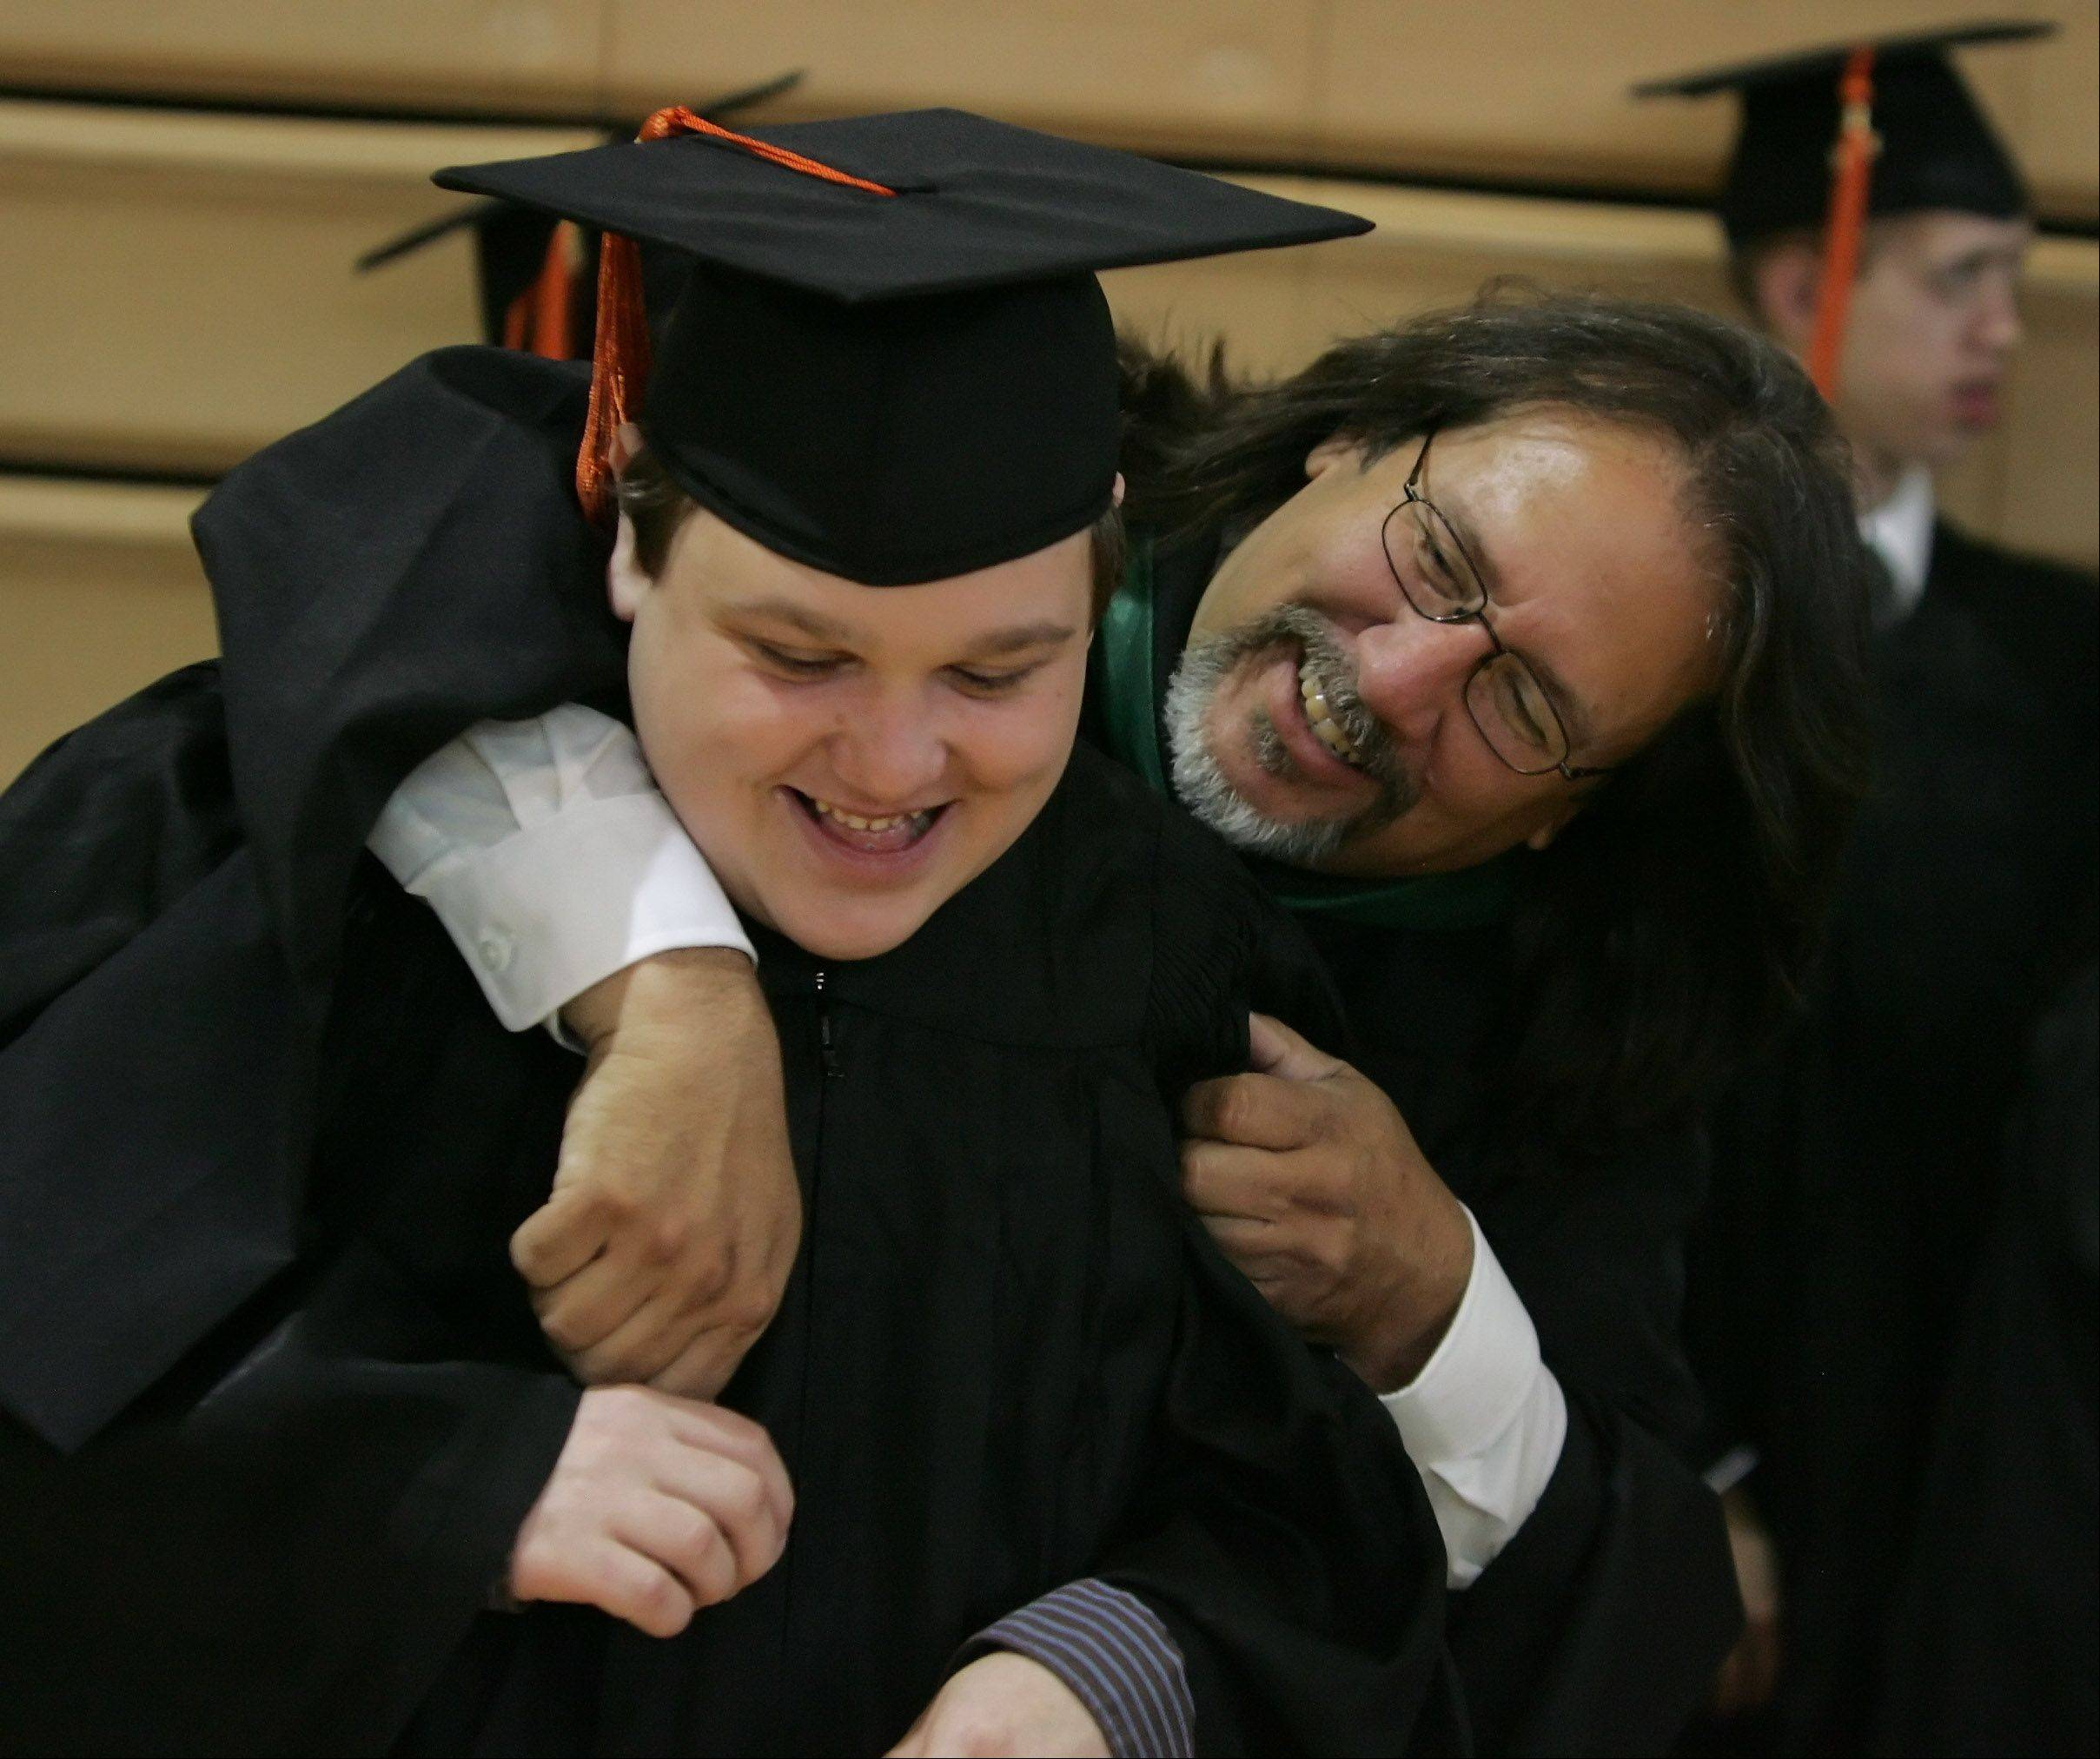 Special education teacher Craig Ameel gives graduate Chris Petrik a hug before the John Hersey High School graduation on Sunday at the school in Arlington Heights. The school was celebrating its 43rd commencement exercises